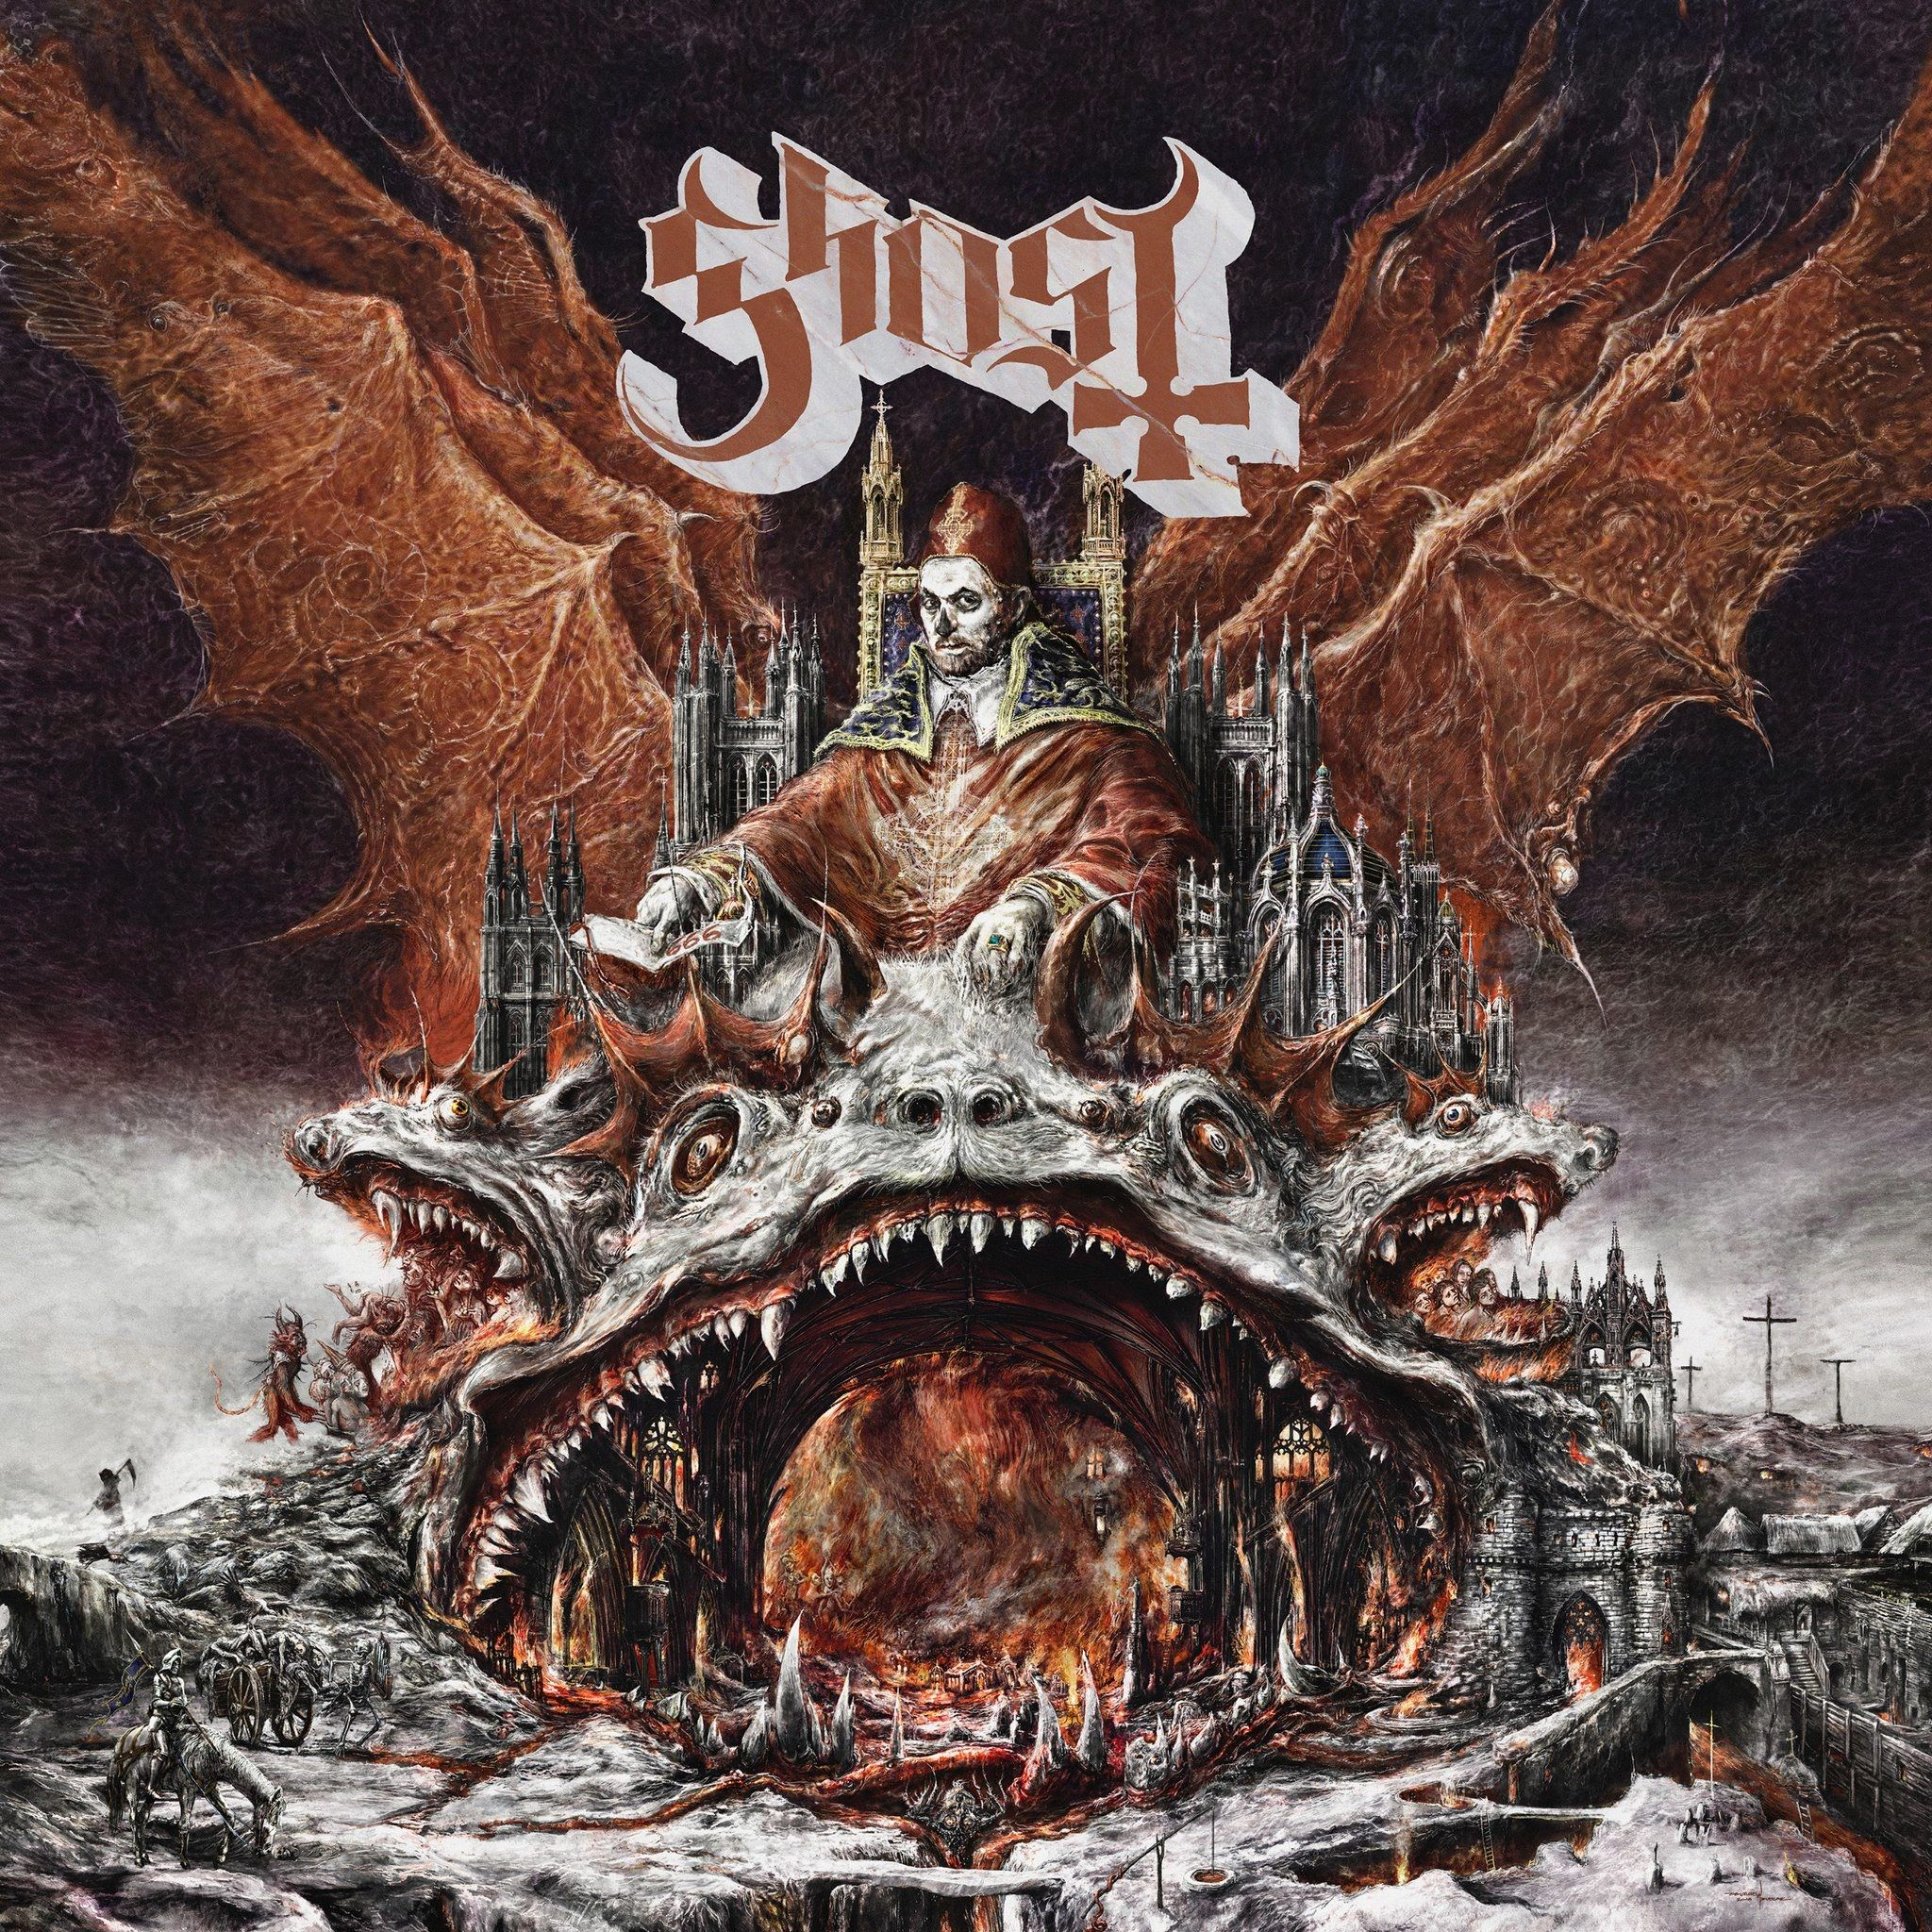 Ghost - Prequelle album cover